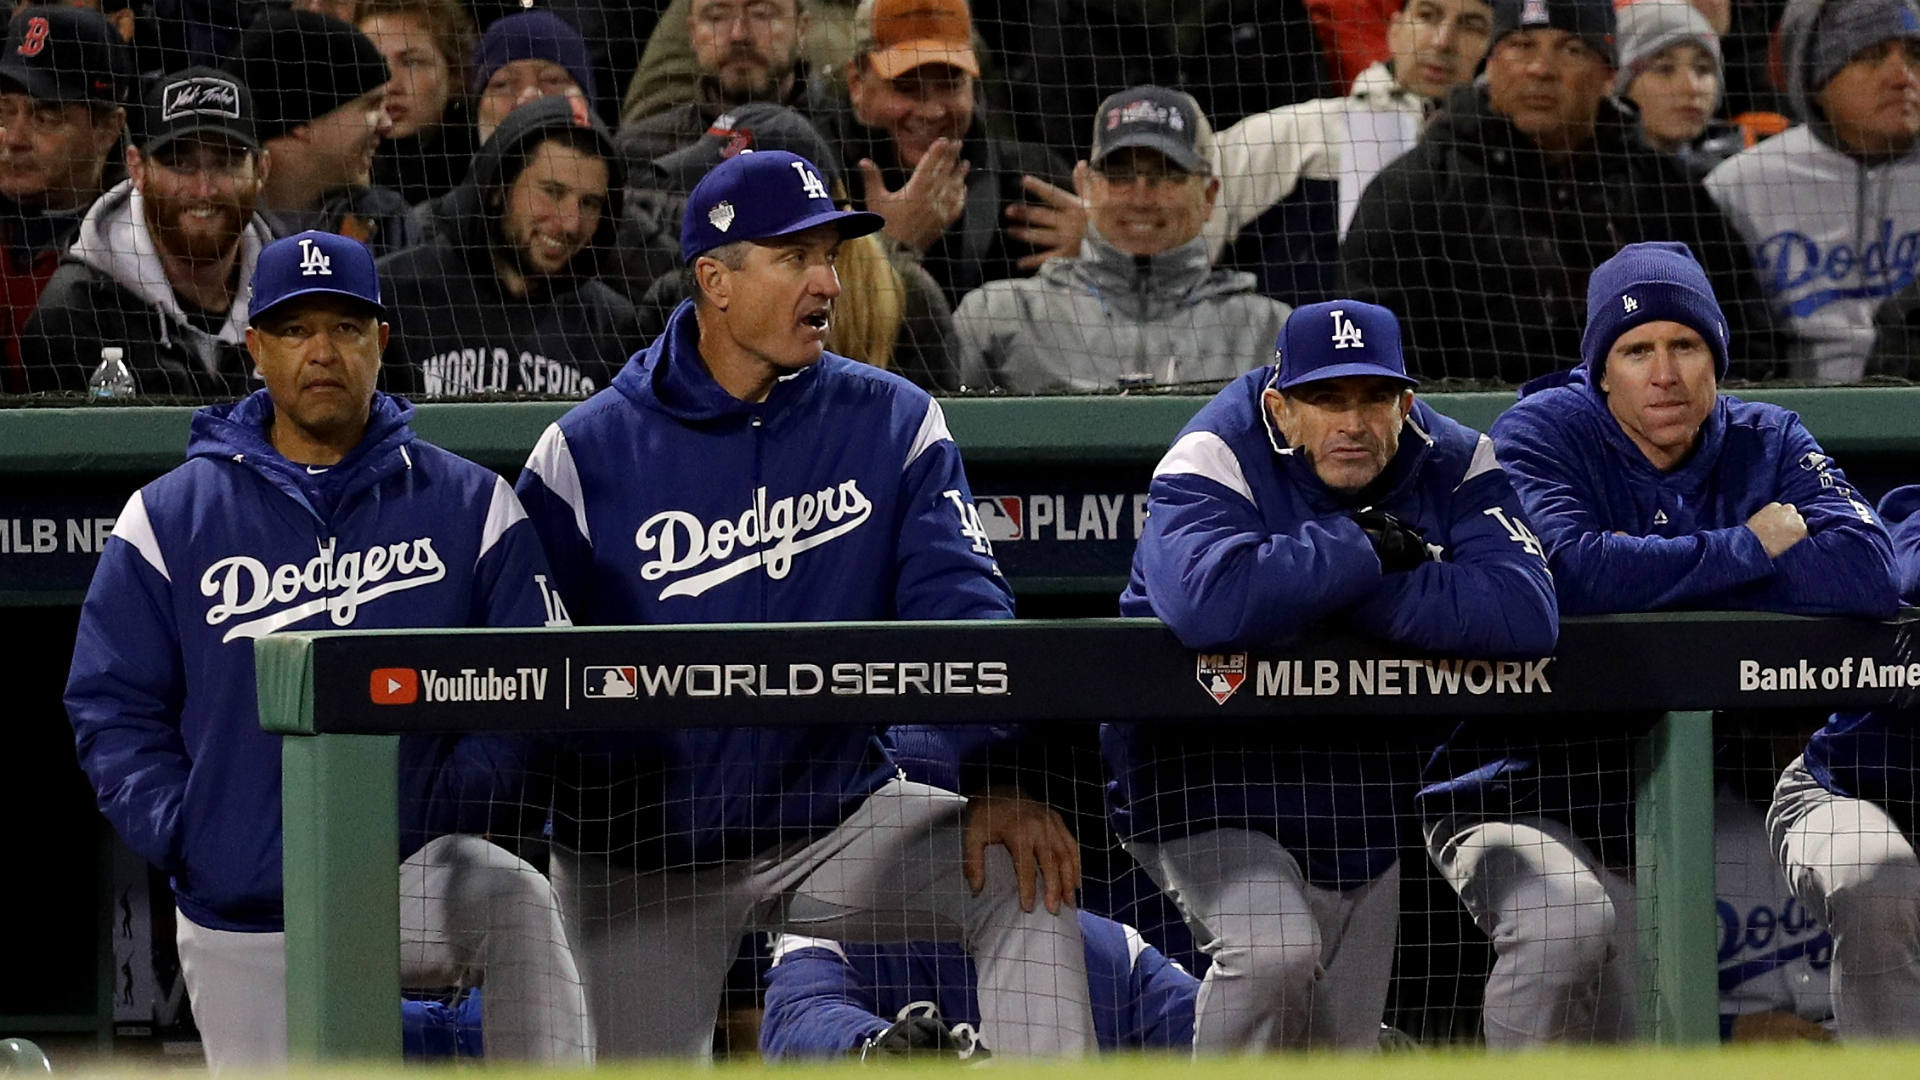 Longest-ever World Series game smashes some home-run memes